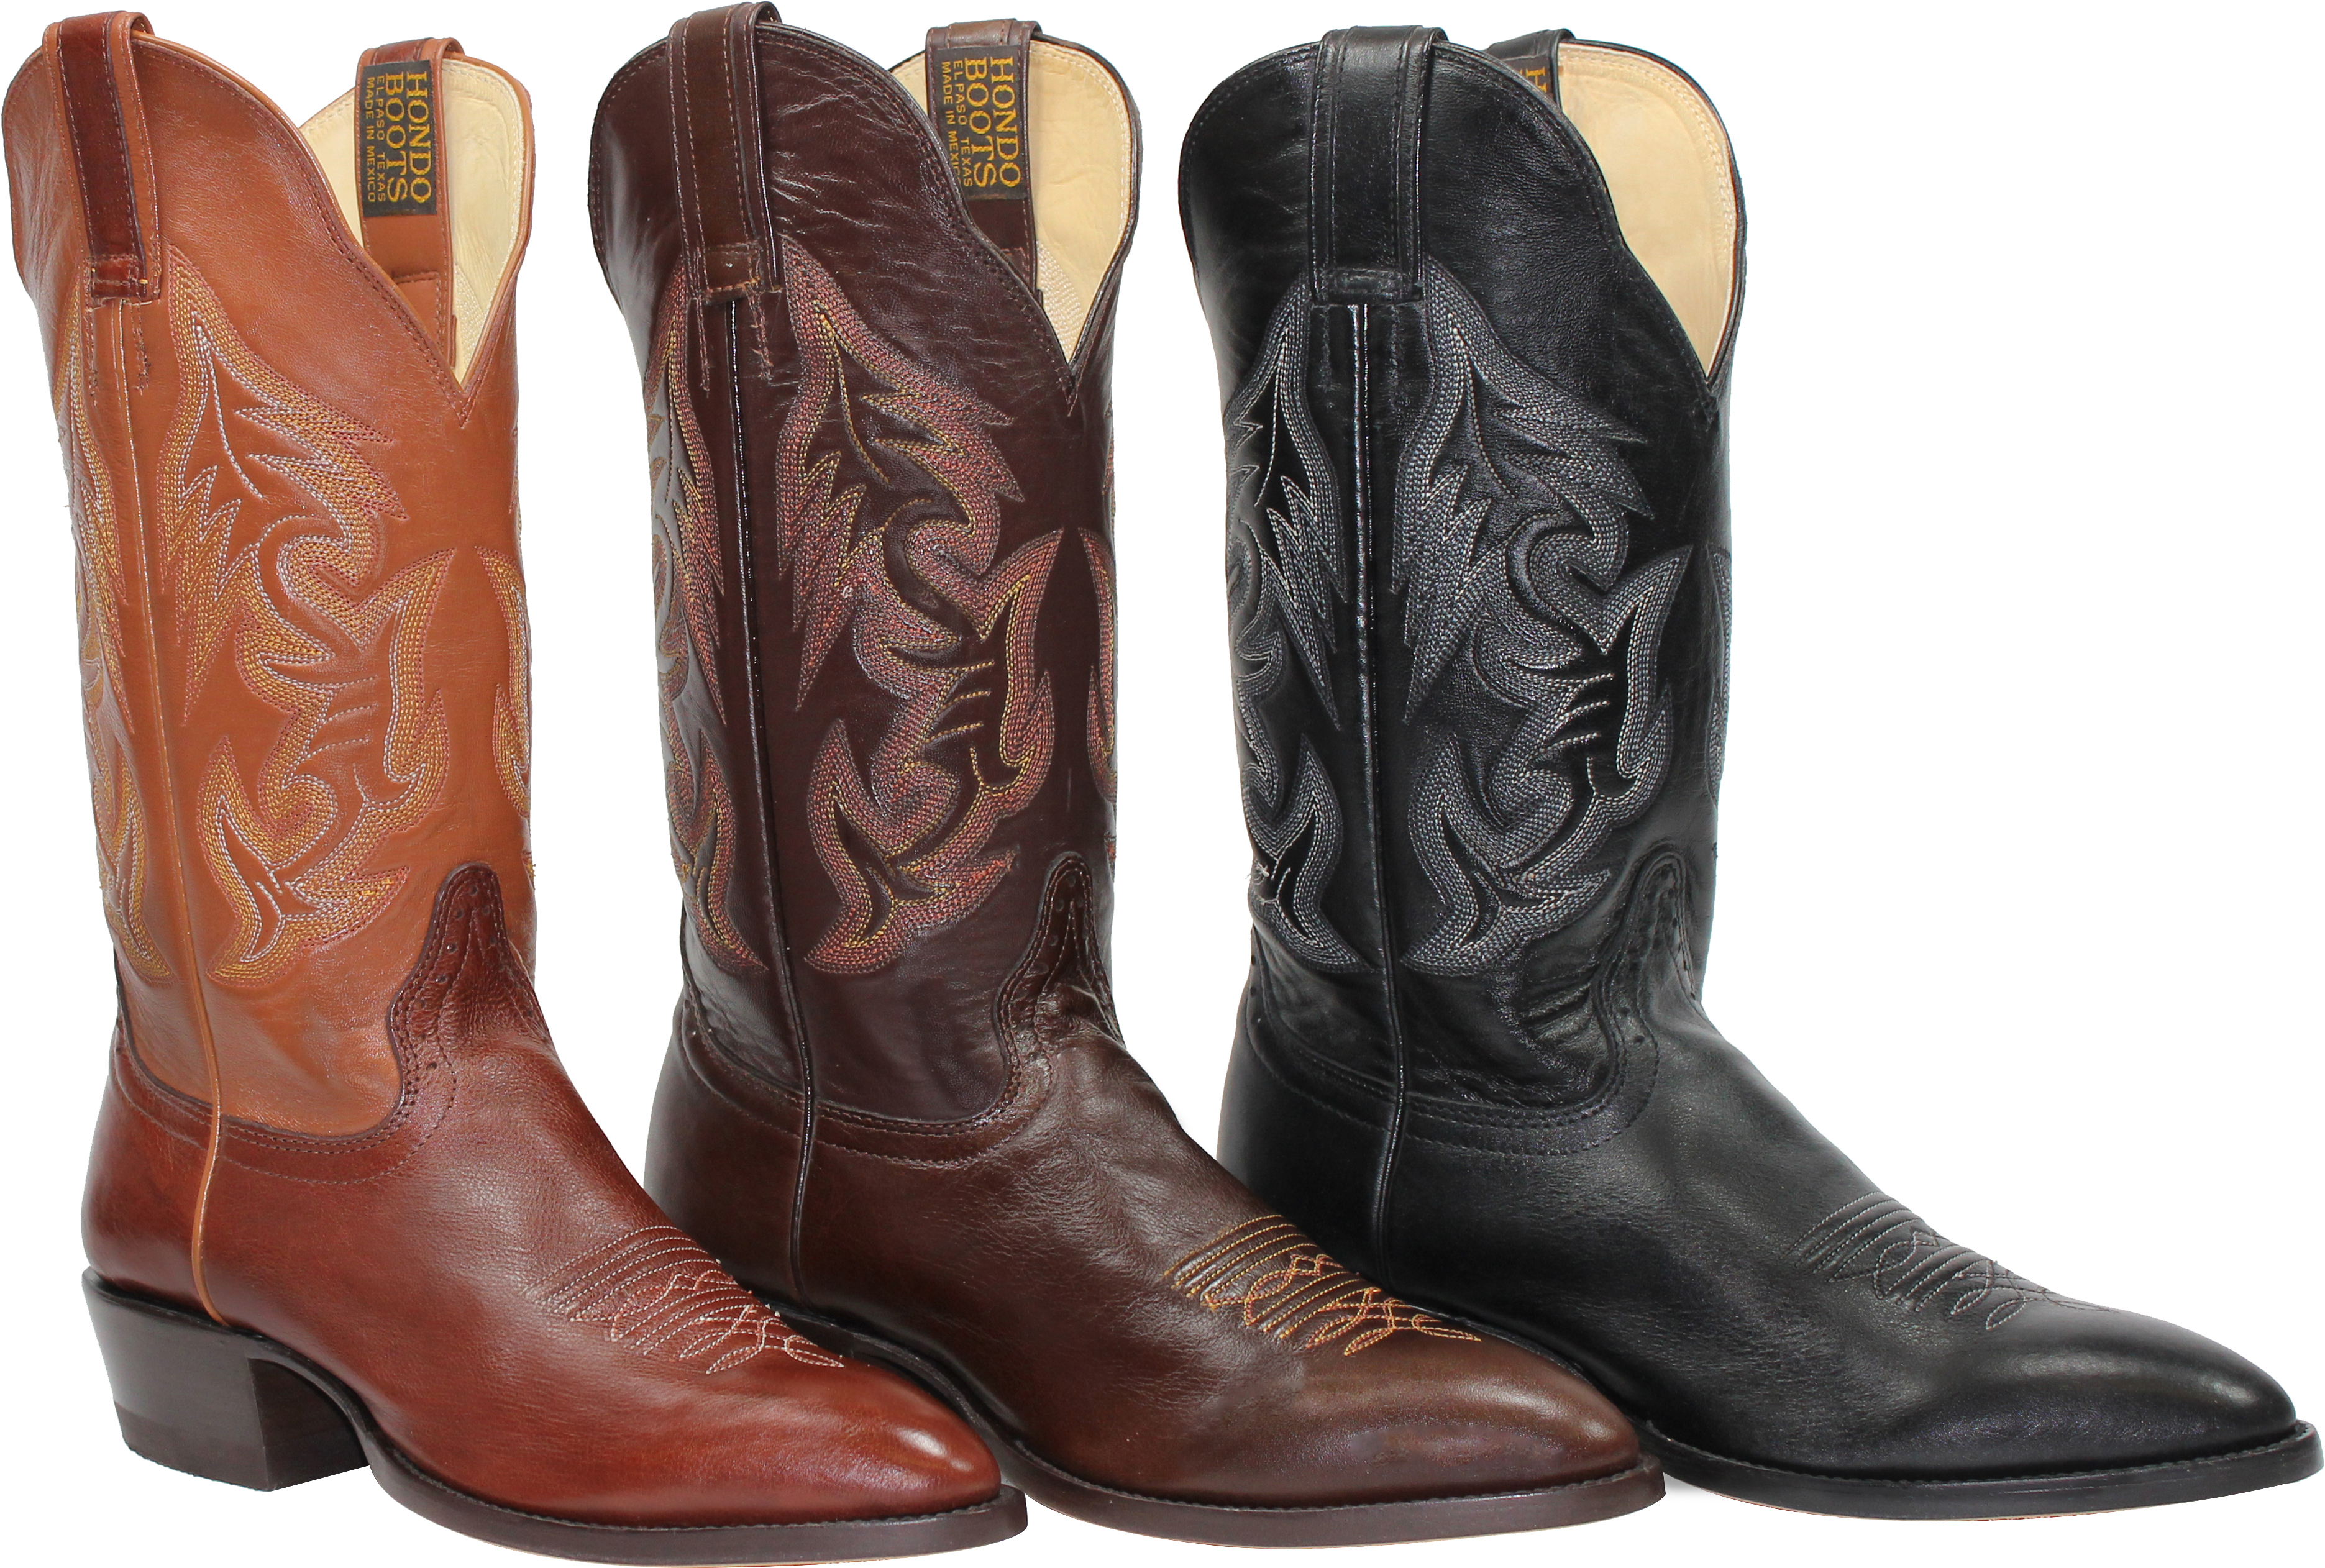 607fec5ee2f Our boot collection – HONDO BOOTS